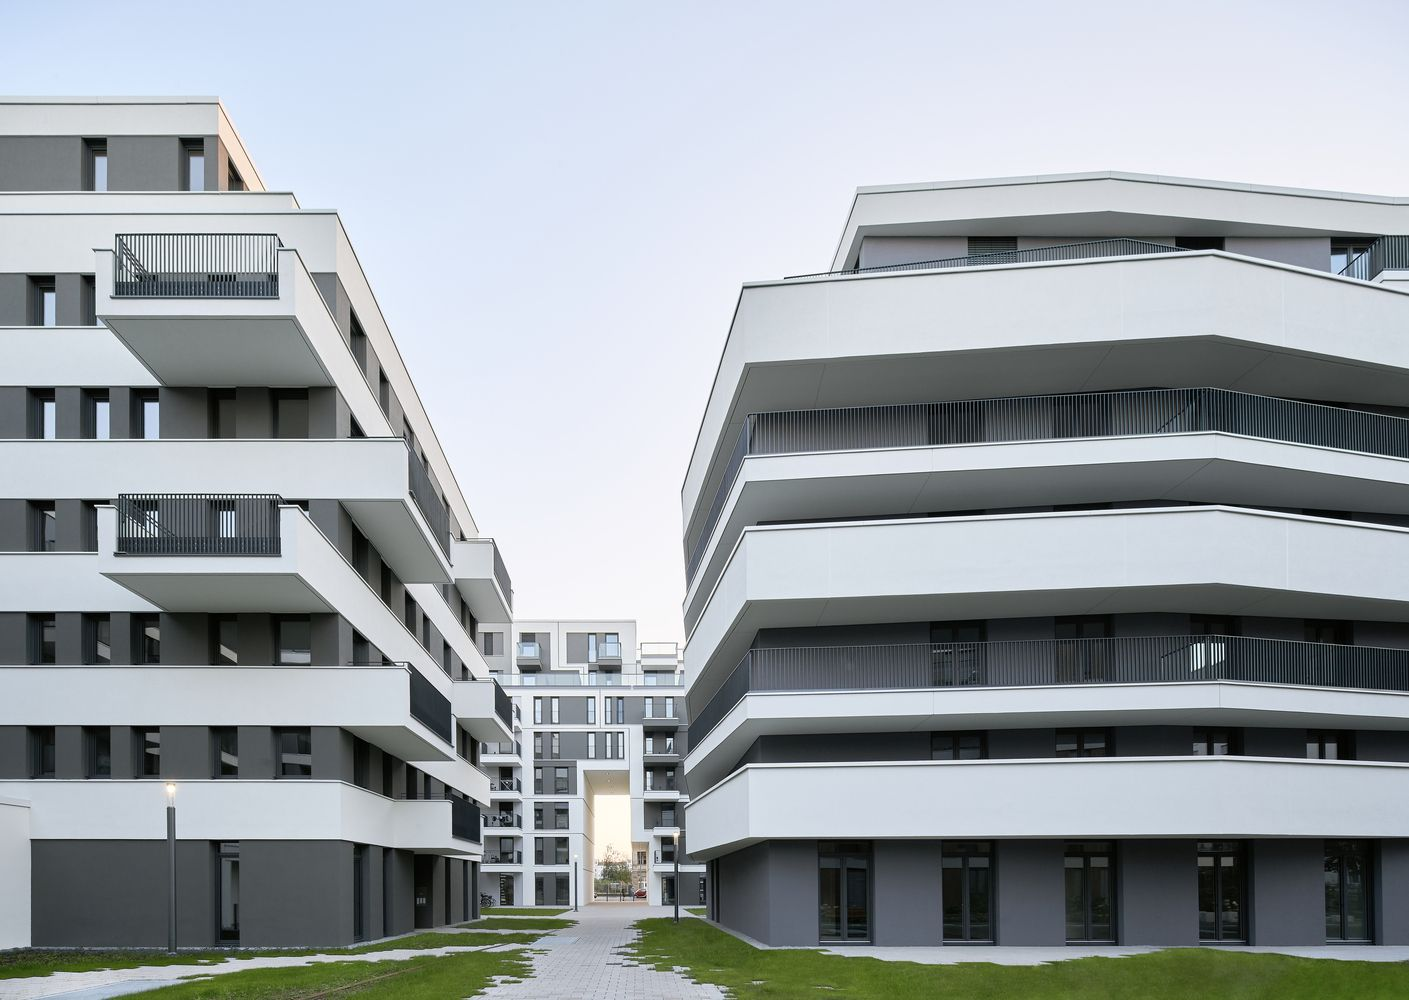 Eike Becker Architekten Gallery Of The Garden / Eike Becker Architekten - 8 | Residential Complex, Architecture Photography, Architecture